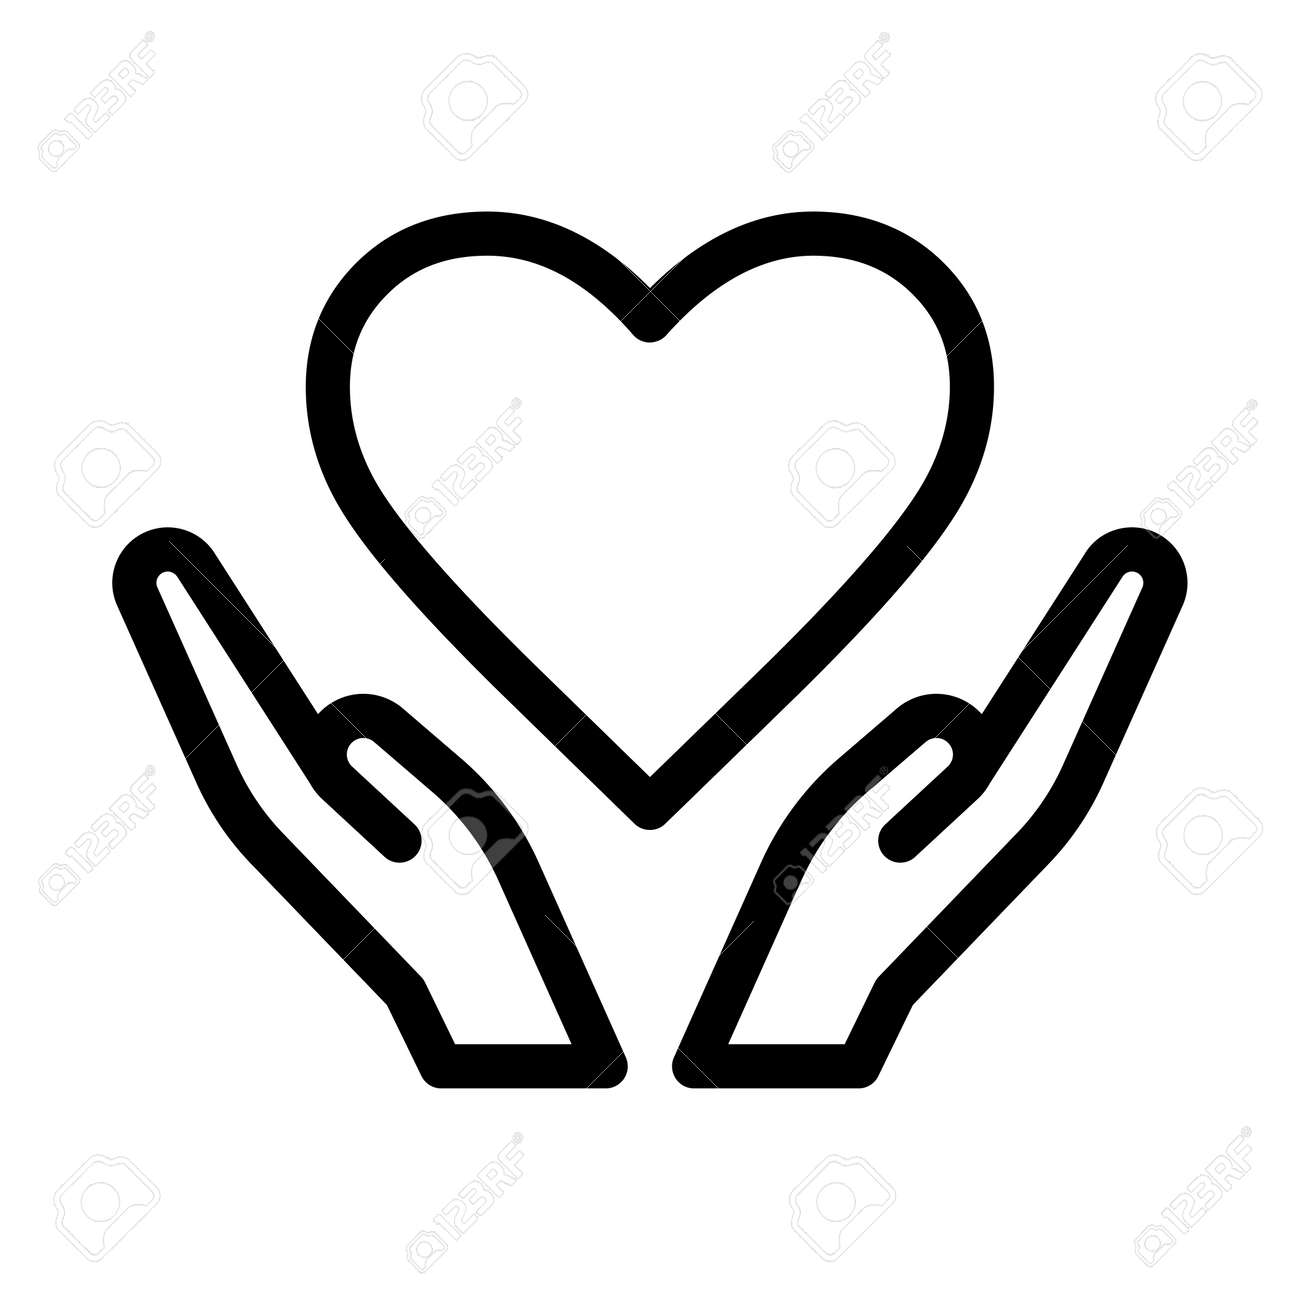 Hands and Heart Icon Vector Art - 169783145